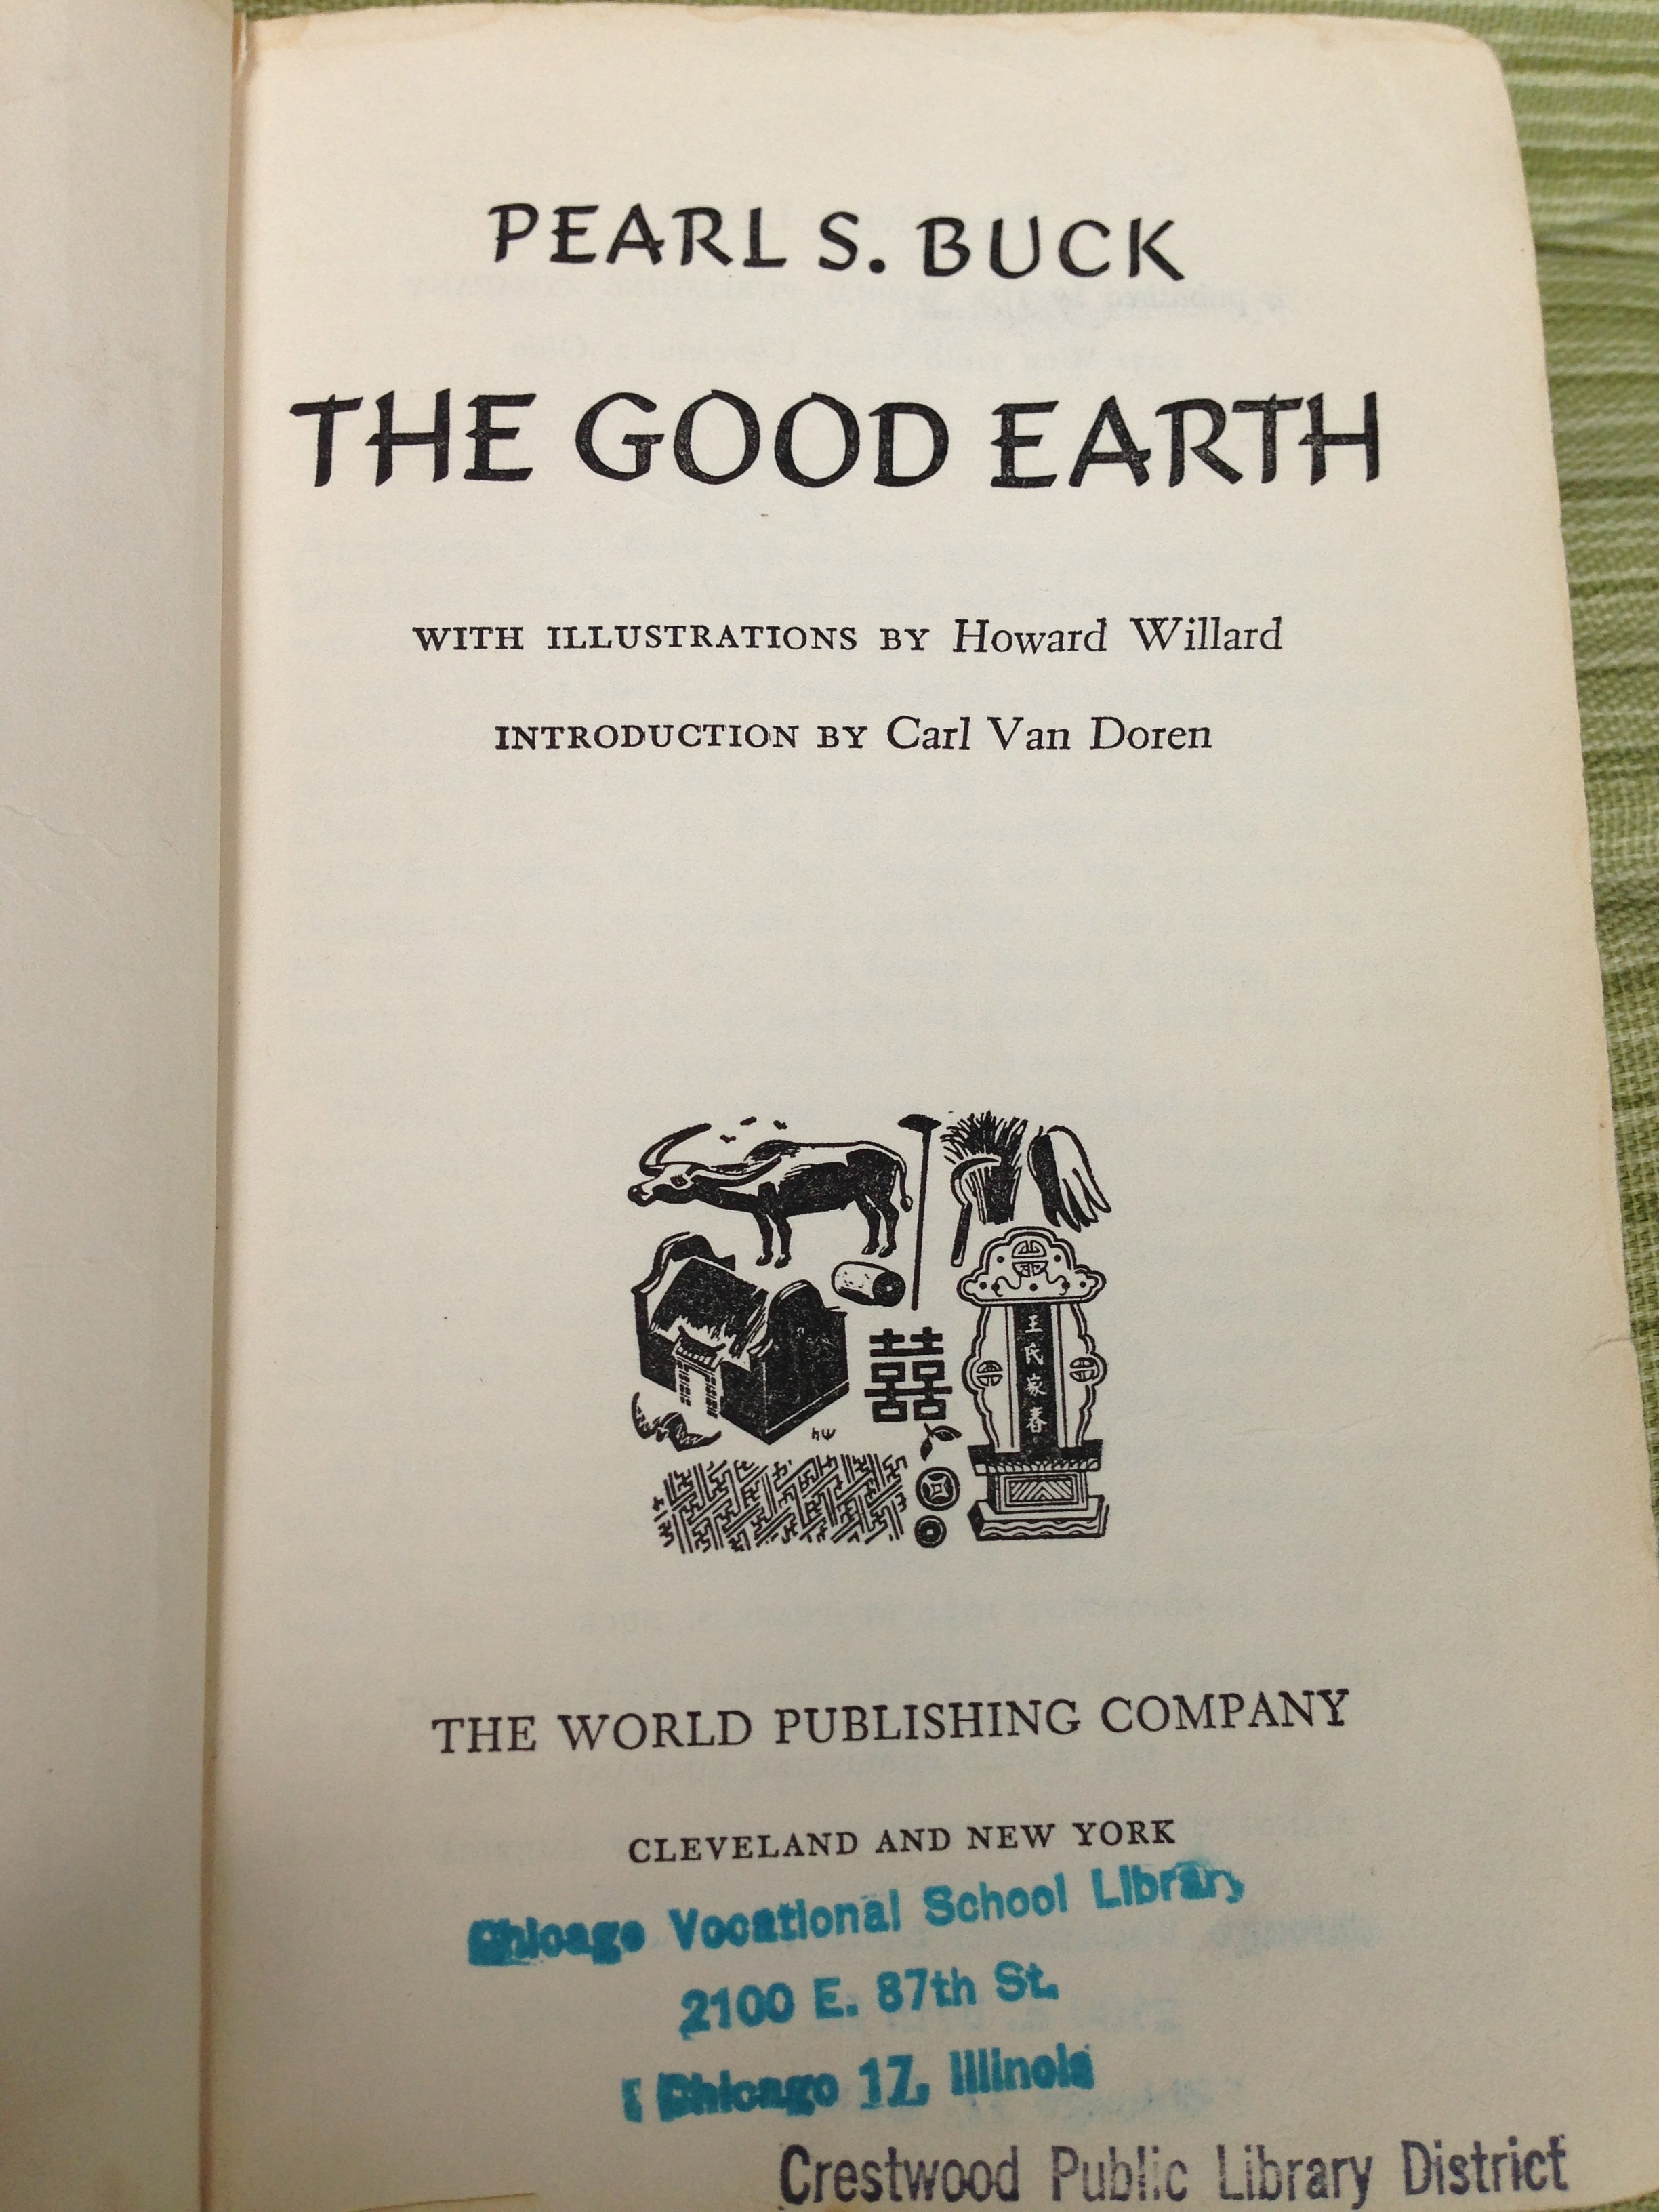 a literary analysis of the good earth by pearl s buck Man's relationship to the earth the overarching theme of the good earth is the nourishing power of the land throughout the novel, a connection to the land is associated with moral piety, good sense, respect for nature, and a strong work ethic, while alienation from the land is associated with decadence and corruption.